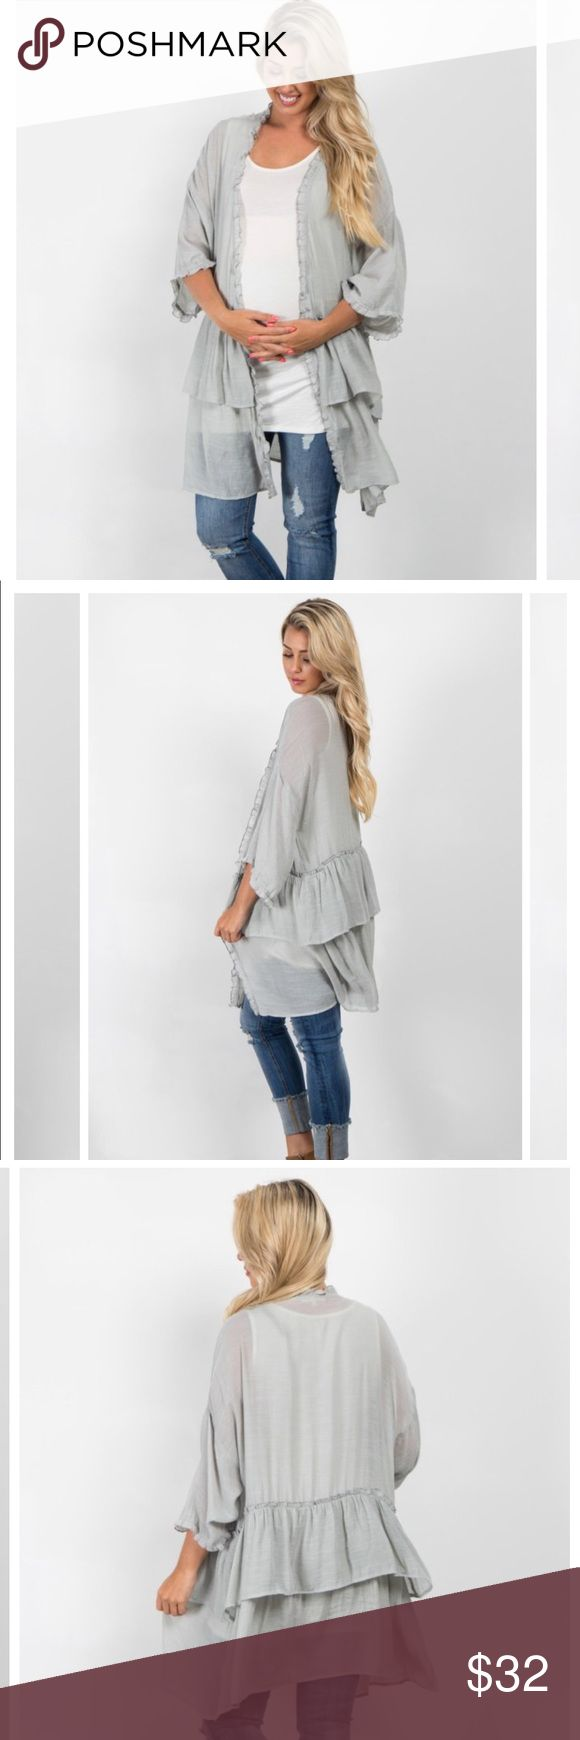 Light Grey Solid Ruffled  Kimono The perfect layering piece! This pretty kimono has everything, with its feminine ruffles and light material, it's both comfortable and stylish. Style with a basic maternity cami and jeans for a casual look. Pinkblush Sweaters Cardigans